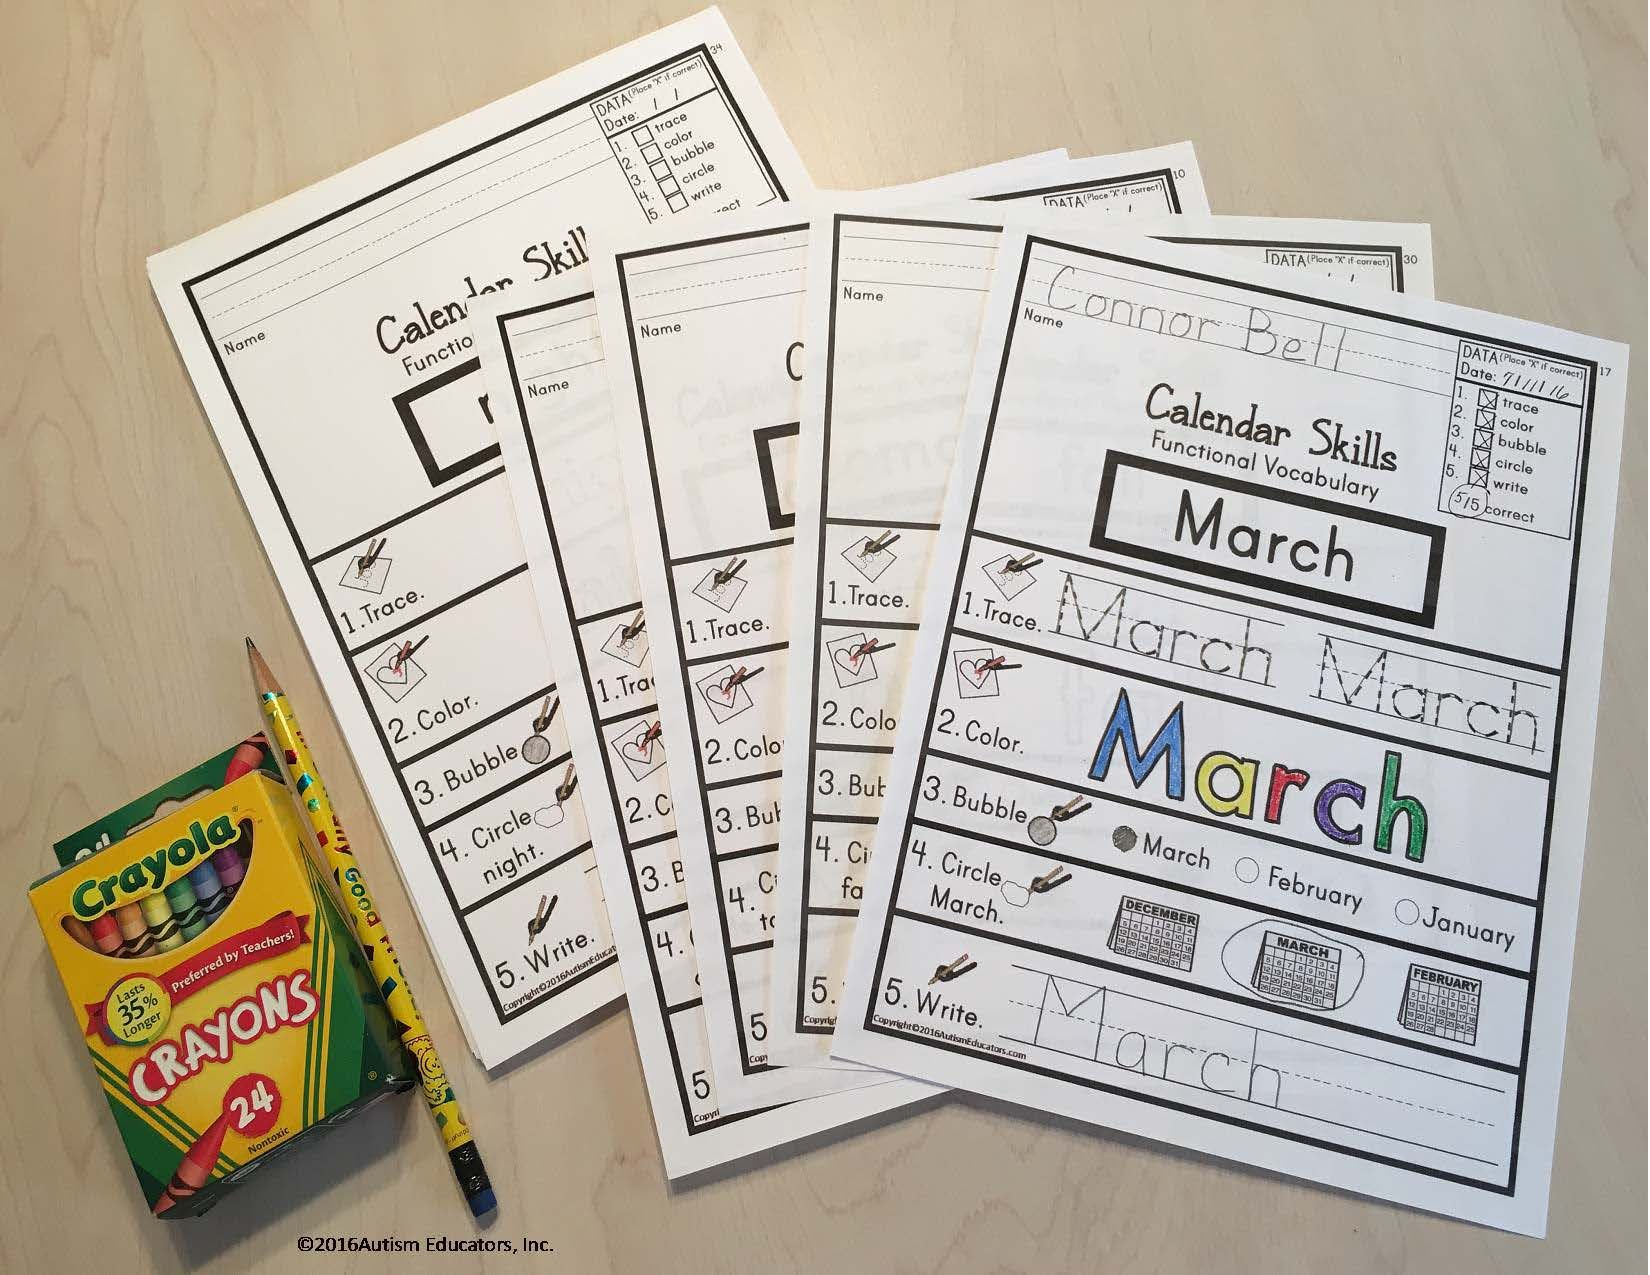 Life Skills Functional Calendar Vocabulary Worksheets With